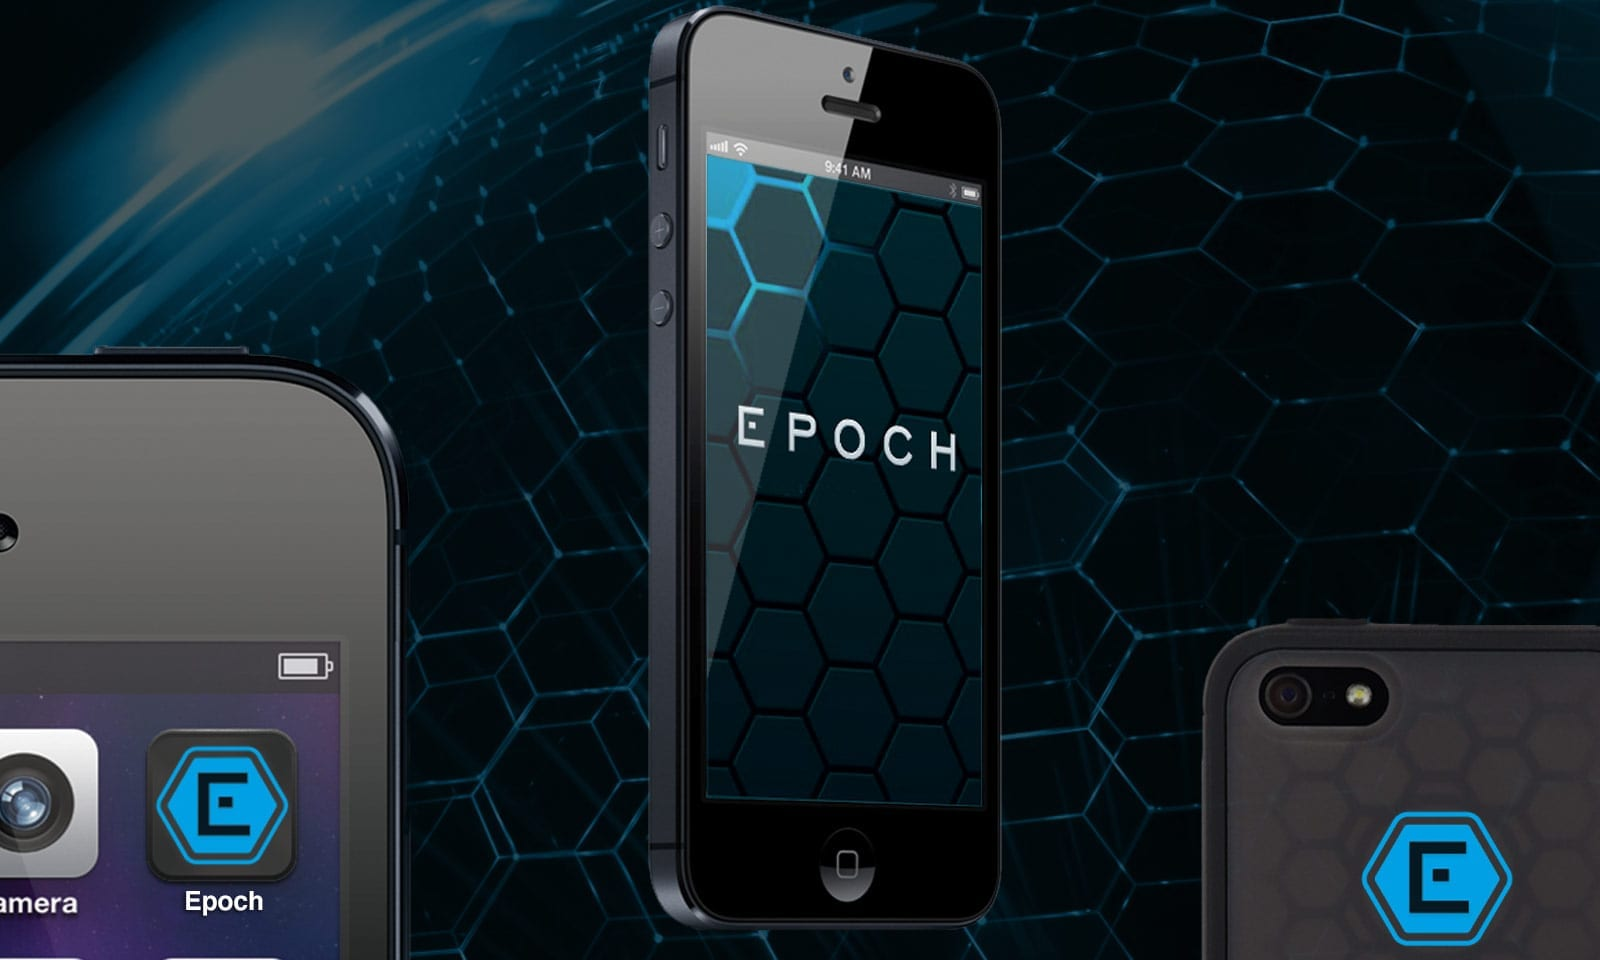 Best corporate identity sydney, Epoch interactive trading app for EPOCH the socially responsible trading network.